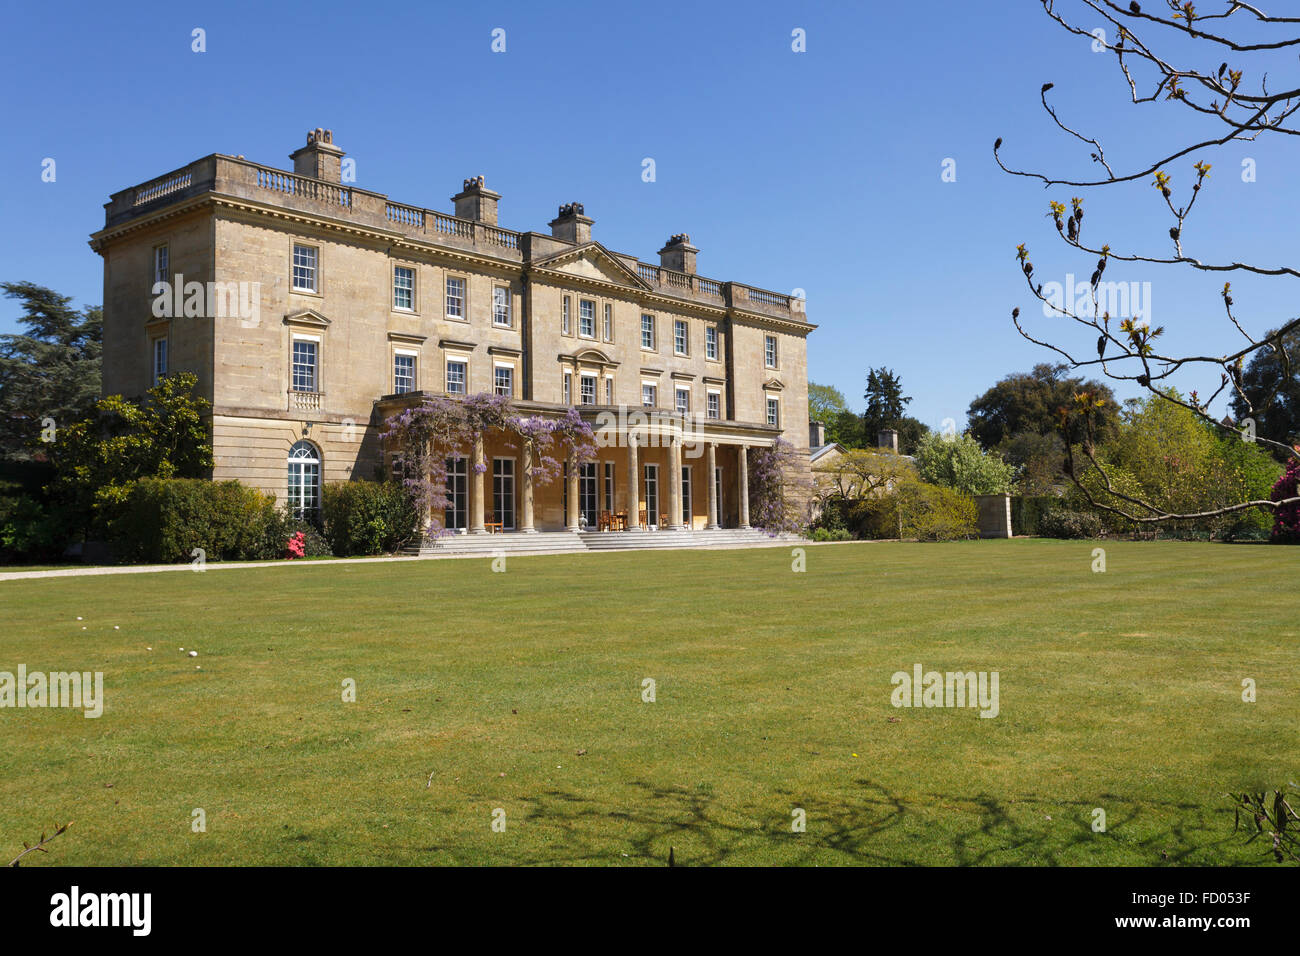 Exbury House, home of the famous Exbury gardens, Hampshire, England, Uk in Spring - Stock Image